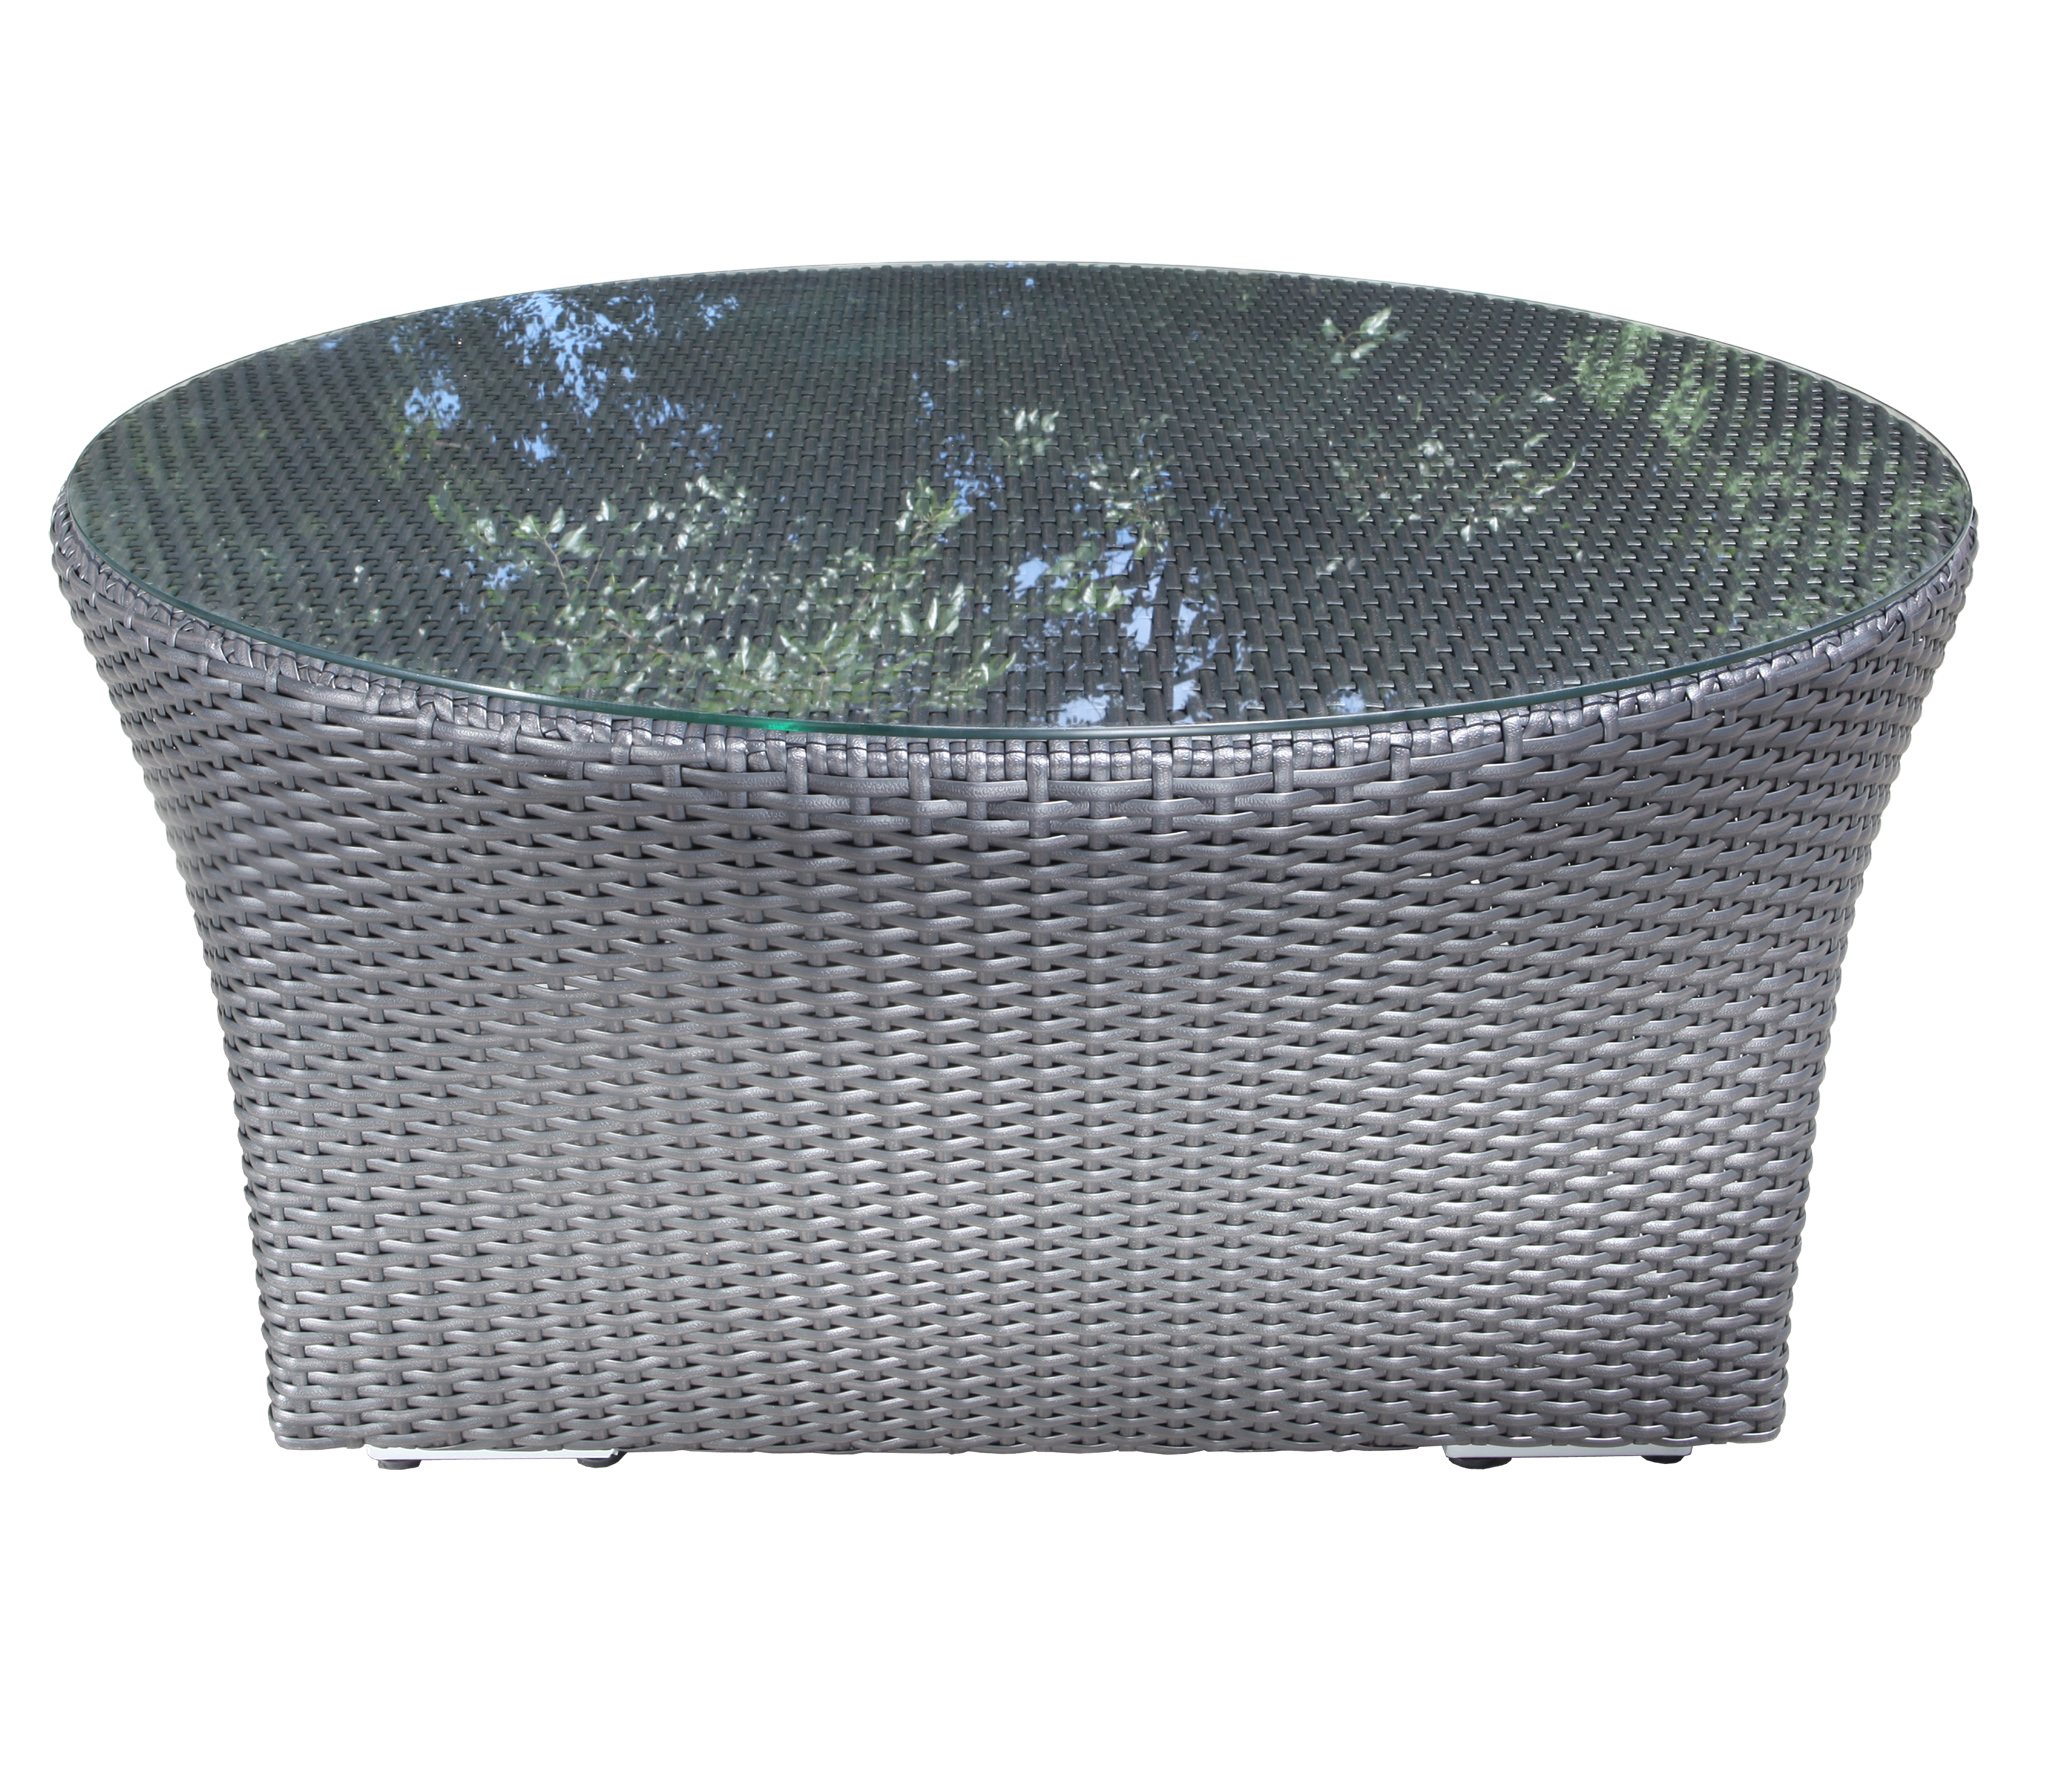 Chorus Curved Wicker Round Coffee Table Patio At Sun Country